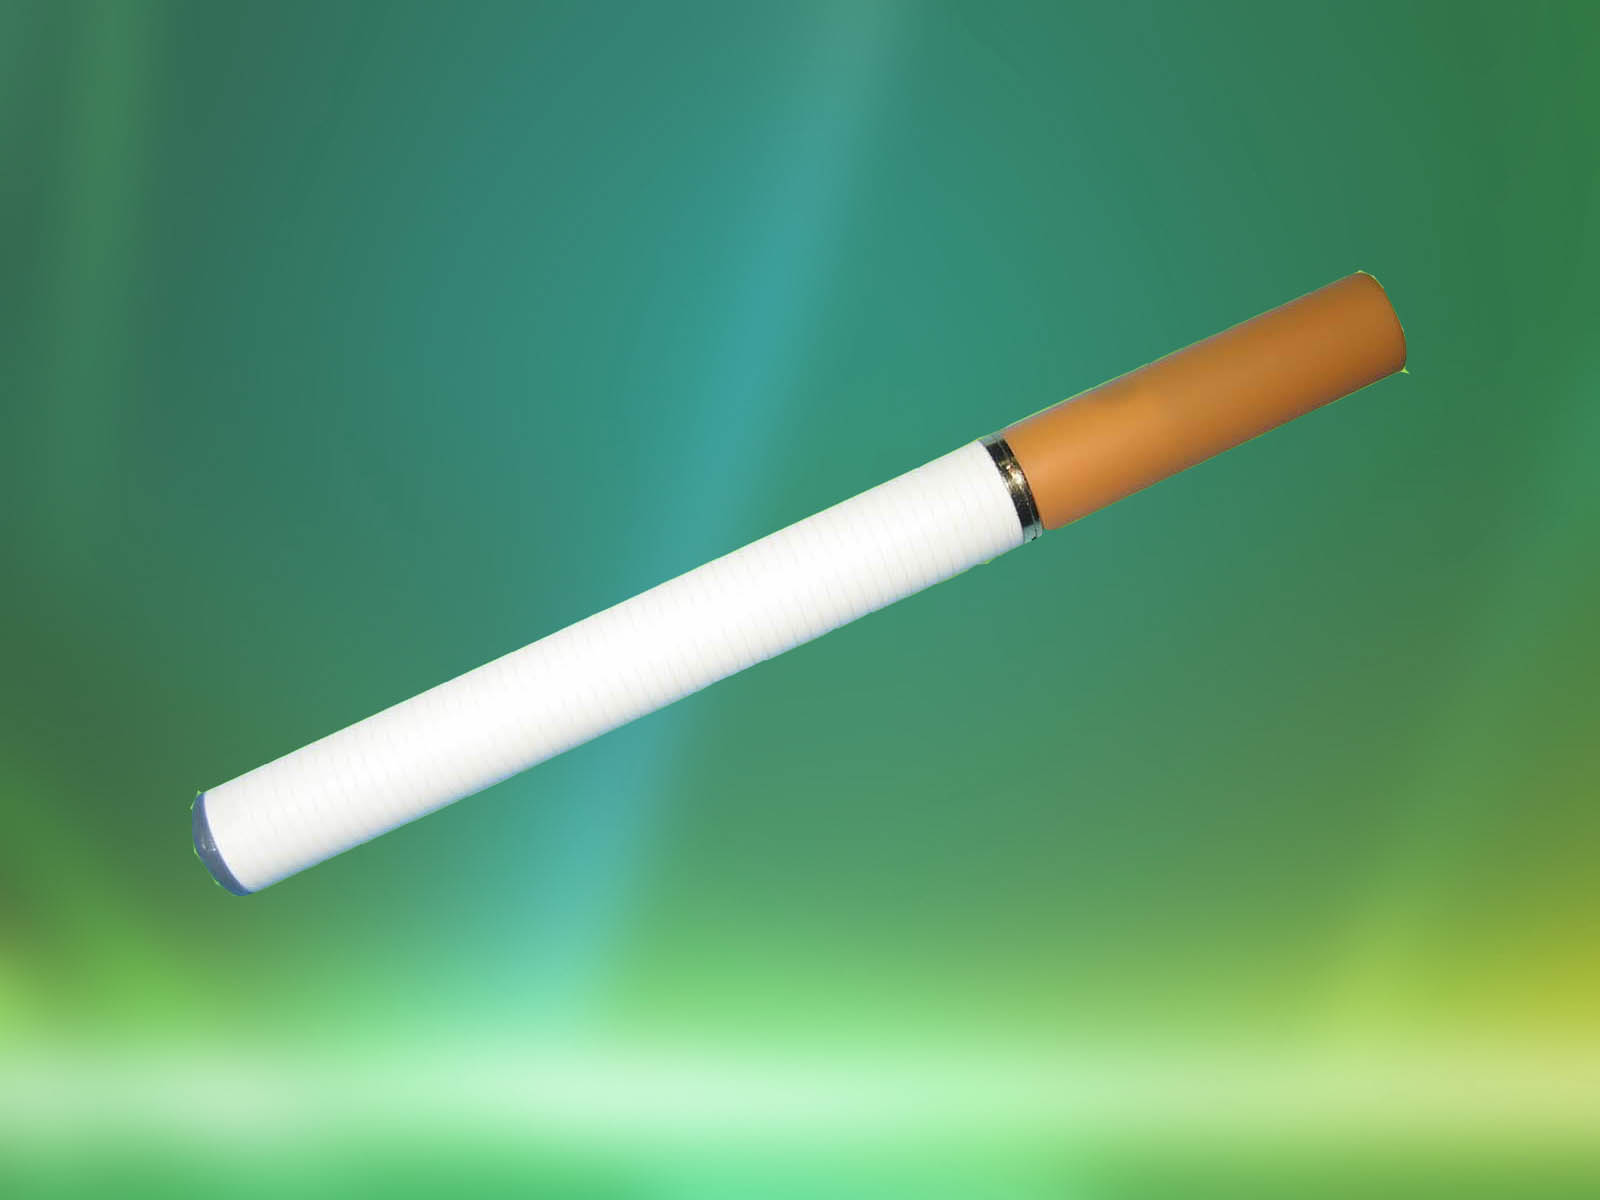 Pictures Blog: Electronic Cigarette